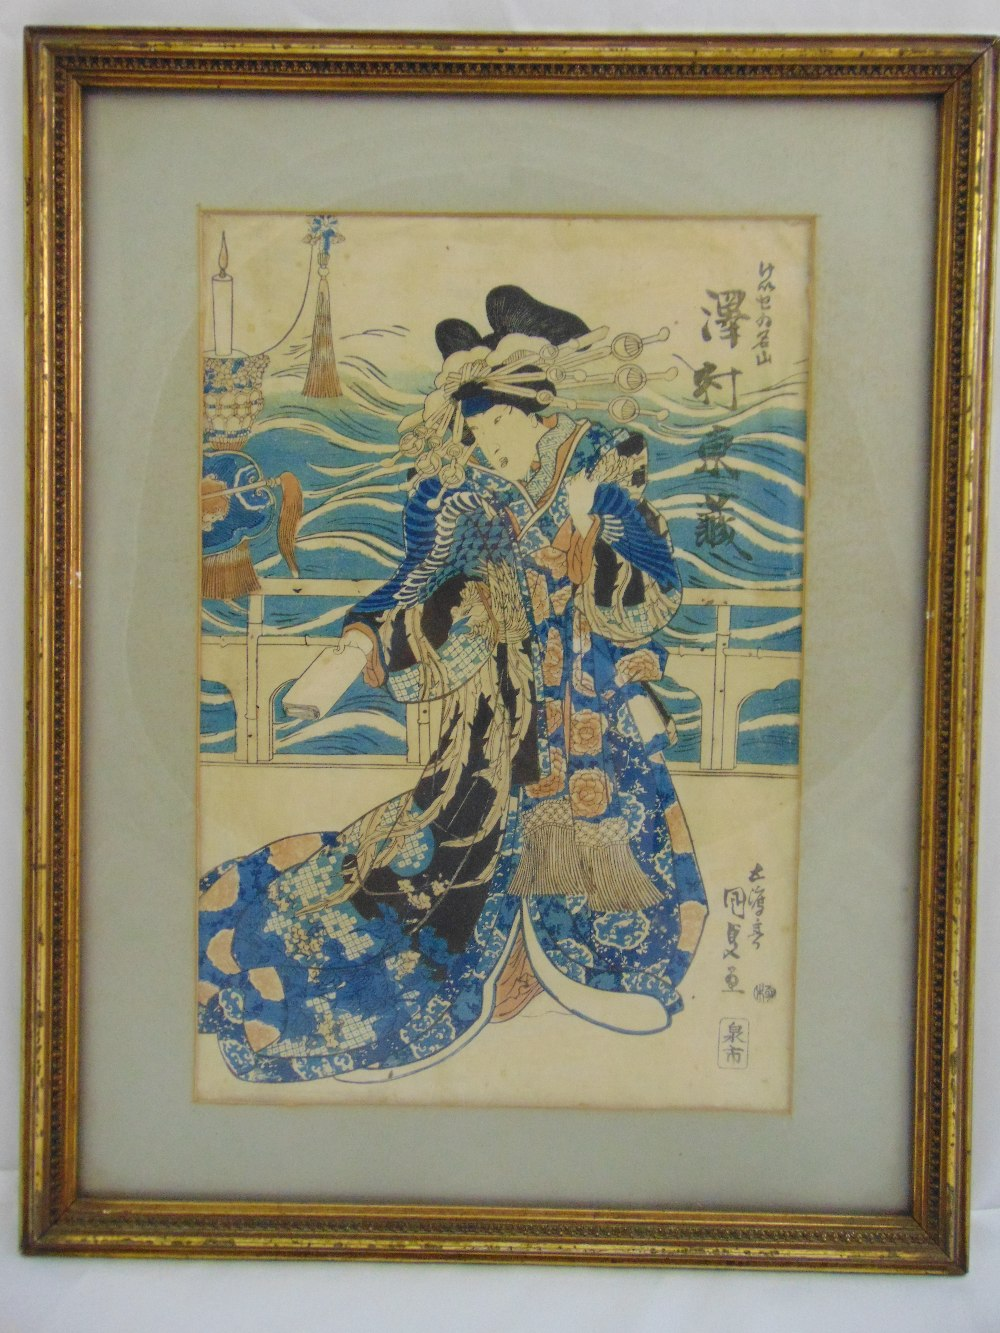 Lot 37 - A framed Japanese polychromatic etching of a Geisha, signed top and bottom to the right, 36.5 x 24.